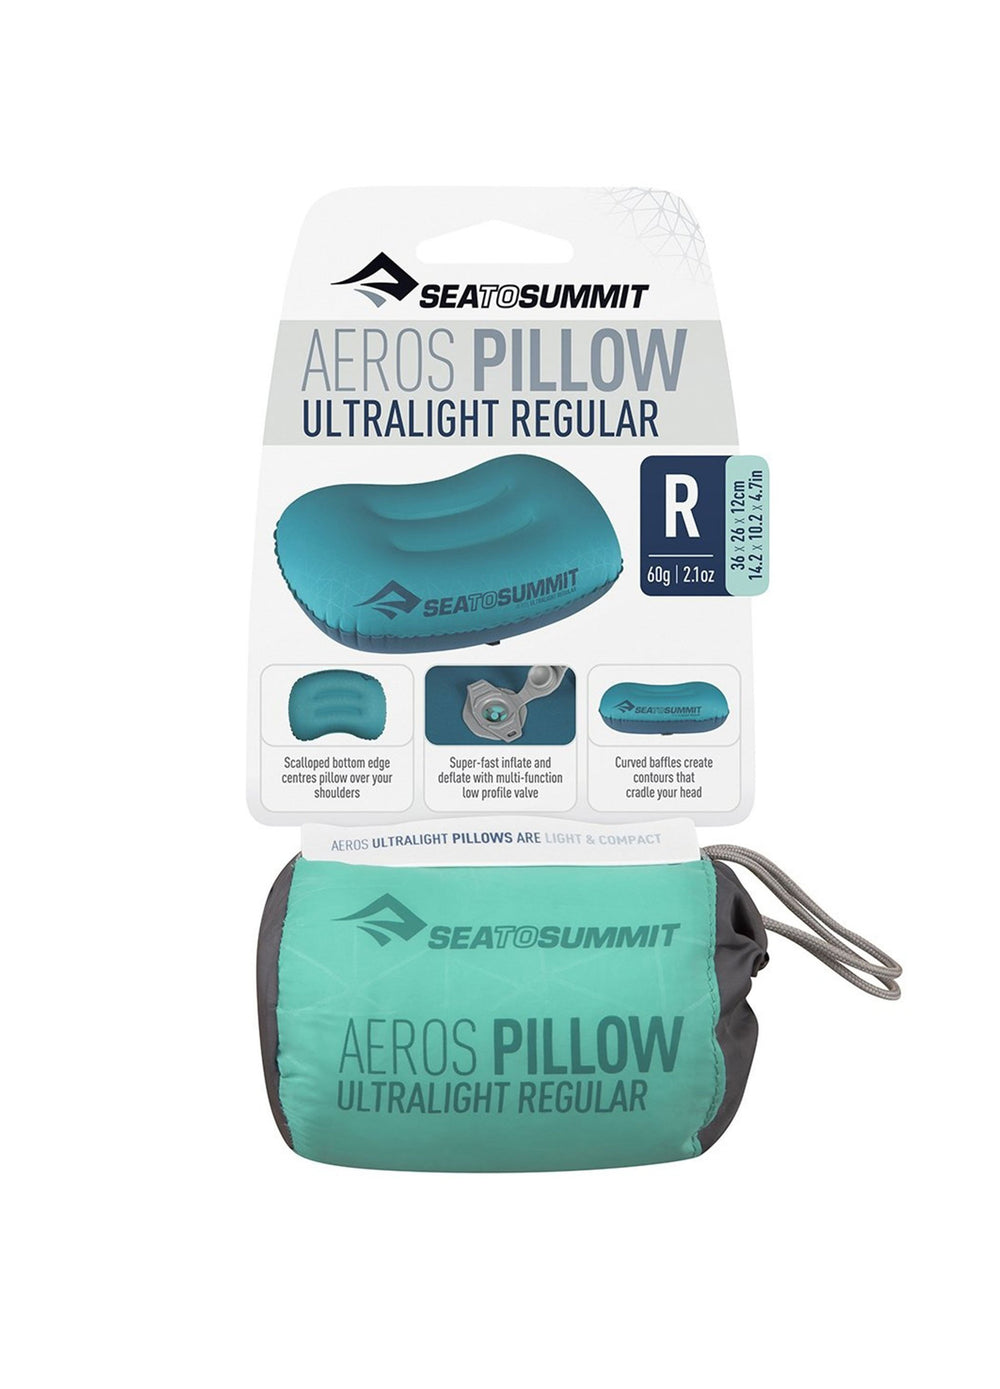 Sea to Summit Aeros Pillow Ultralight